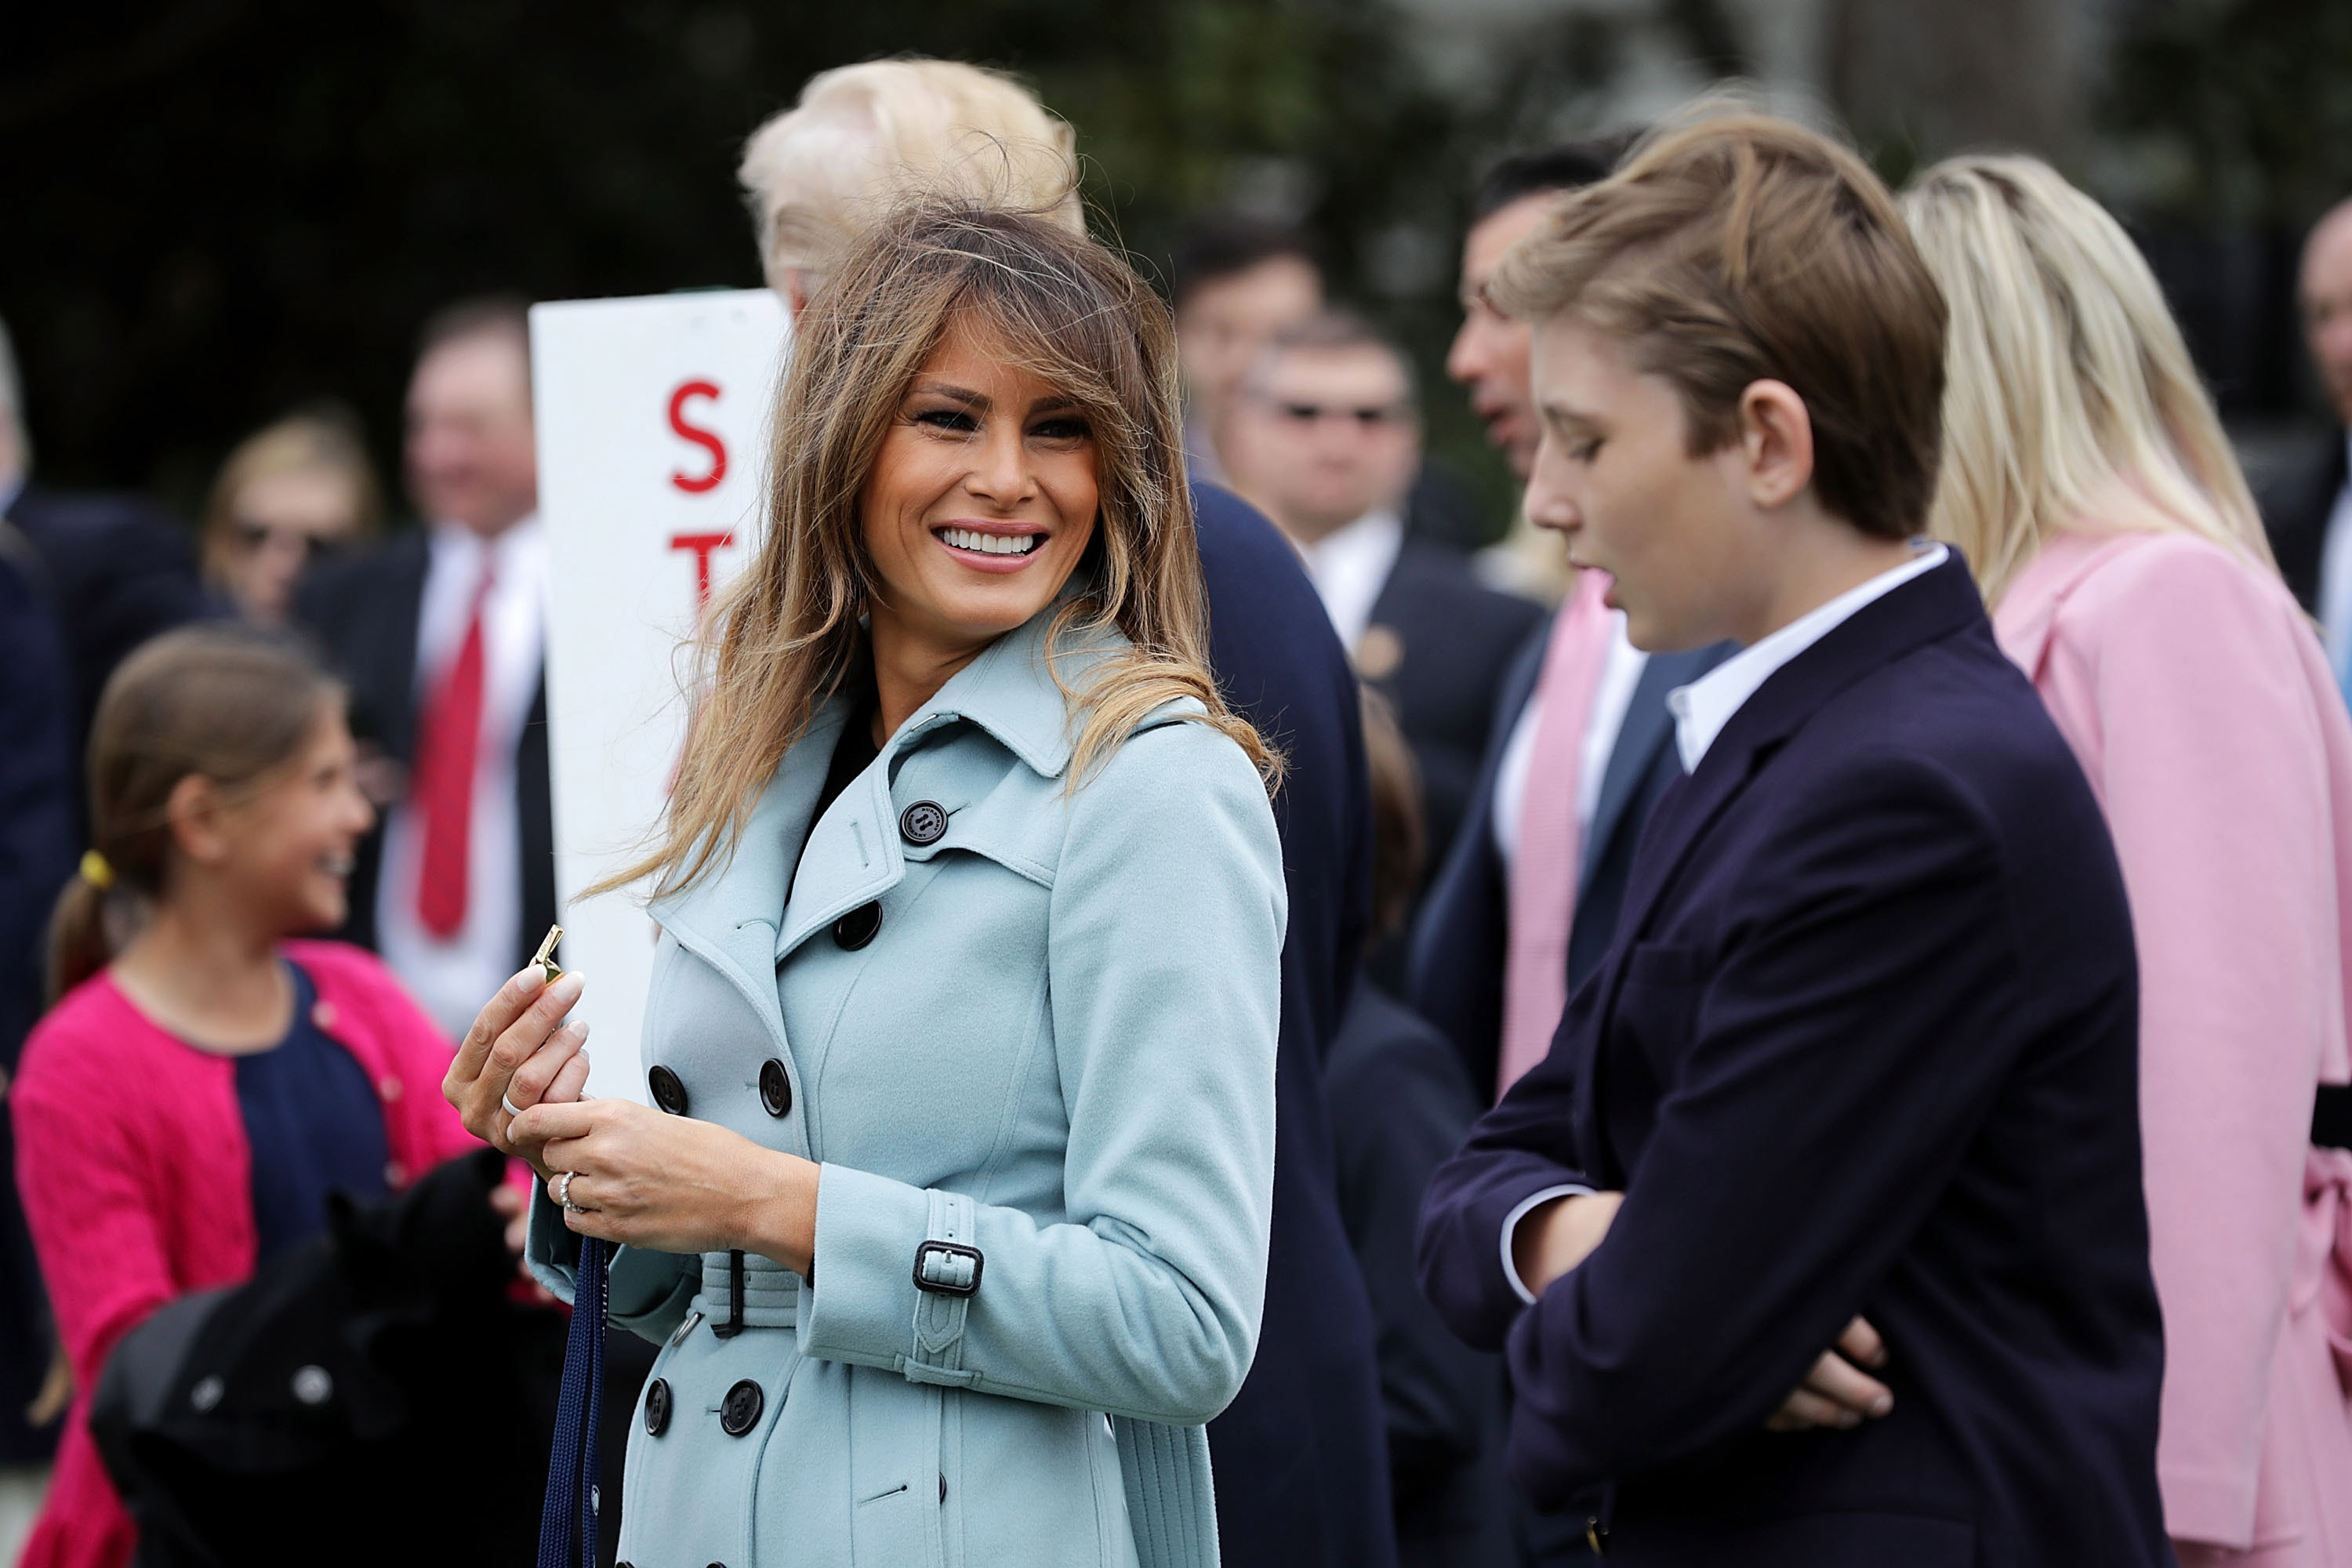 US. first lady Melania Trump (C) and her son Barron Trump attend the 140th annual Easter Egg Roll on the South Lawn of the White House April 2, 2018 in Washington, DC. The White House said they are expecting 30,000 children and adults to participate in the annual tradition of rolling colored eggs down the White House lawn that was started by President Rutherford B. Hayes in 1878.